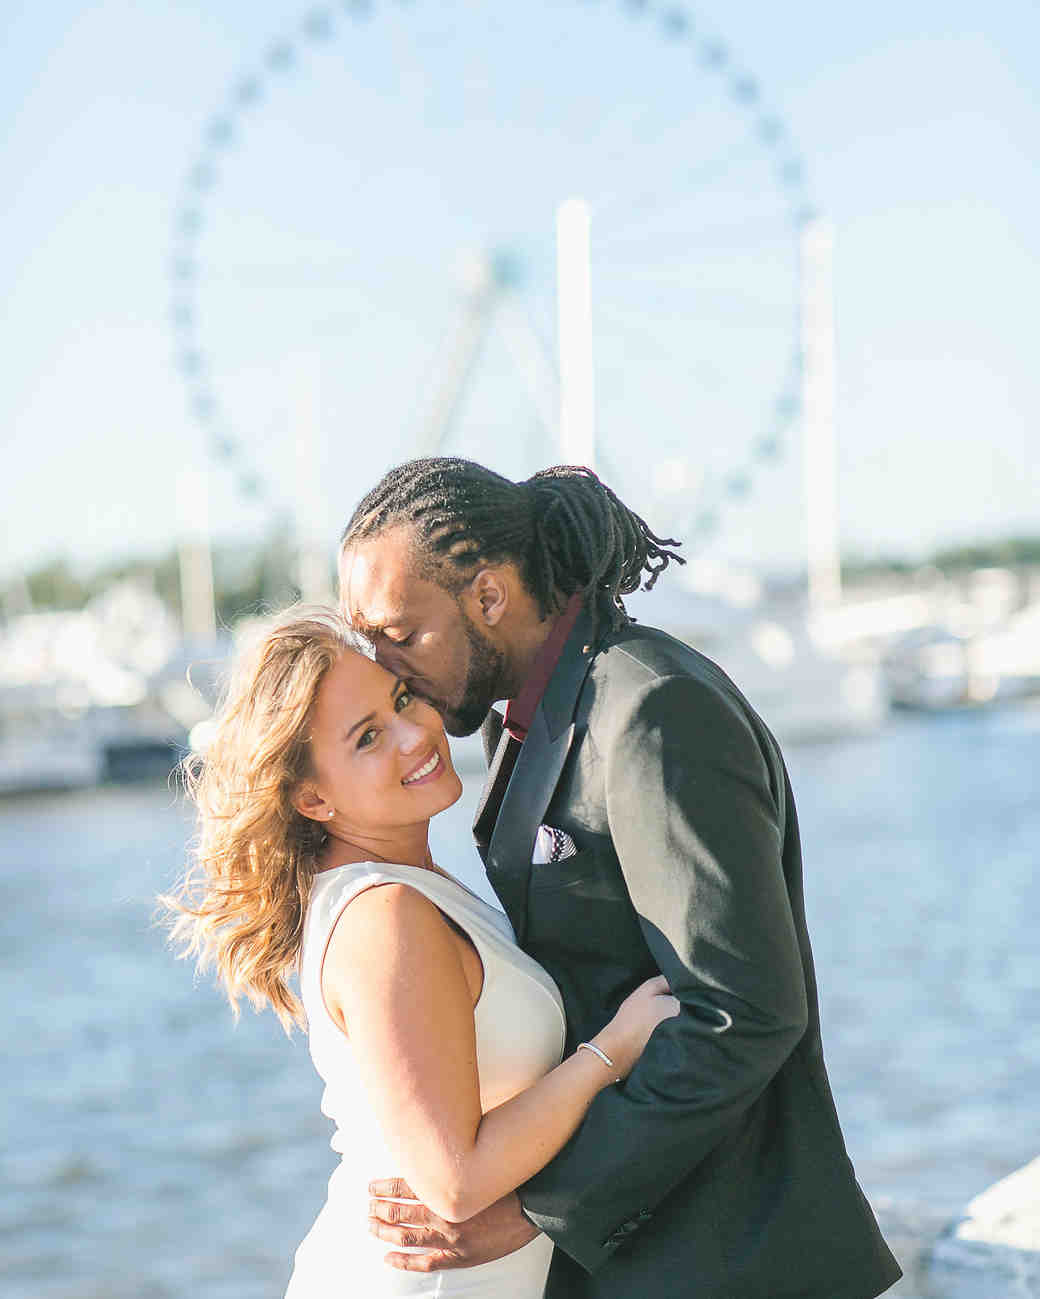 Top Makeup Tips for Taking EngagementPhotos pics